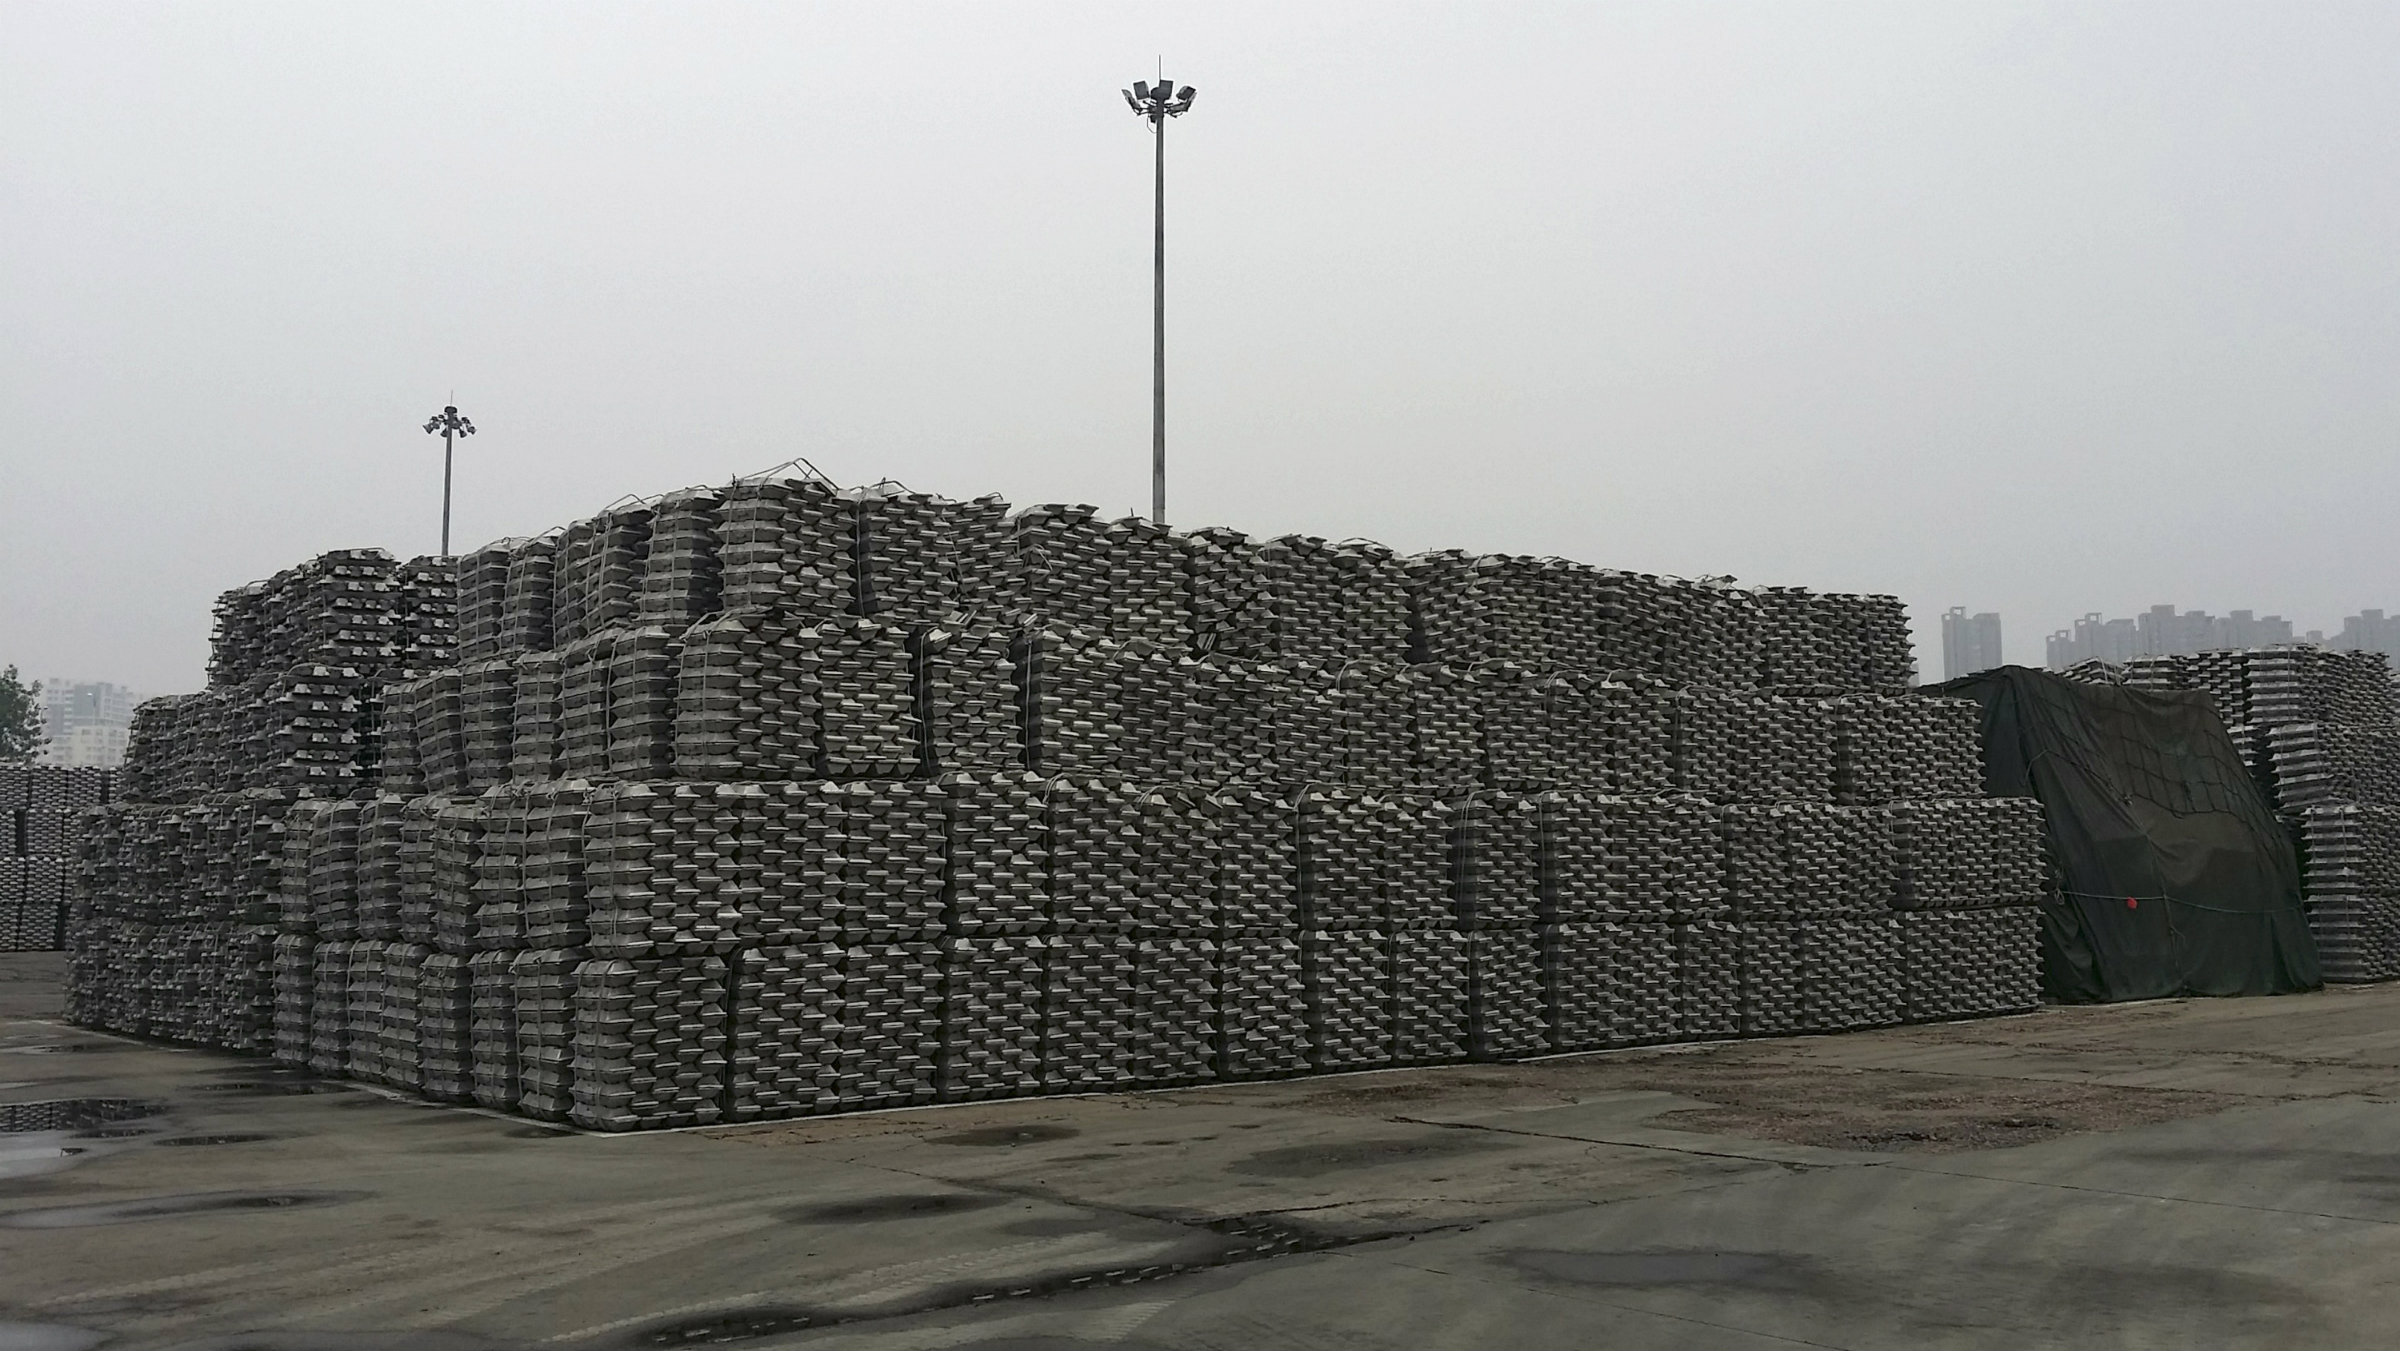 Aluminum is stockpiled in Qingdao, China's third-largest port.